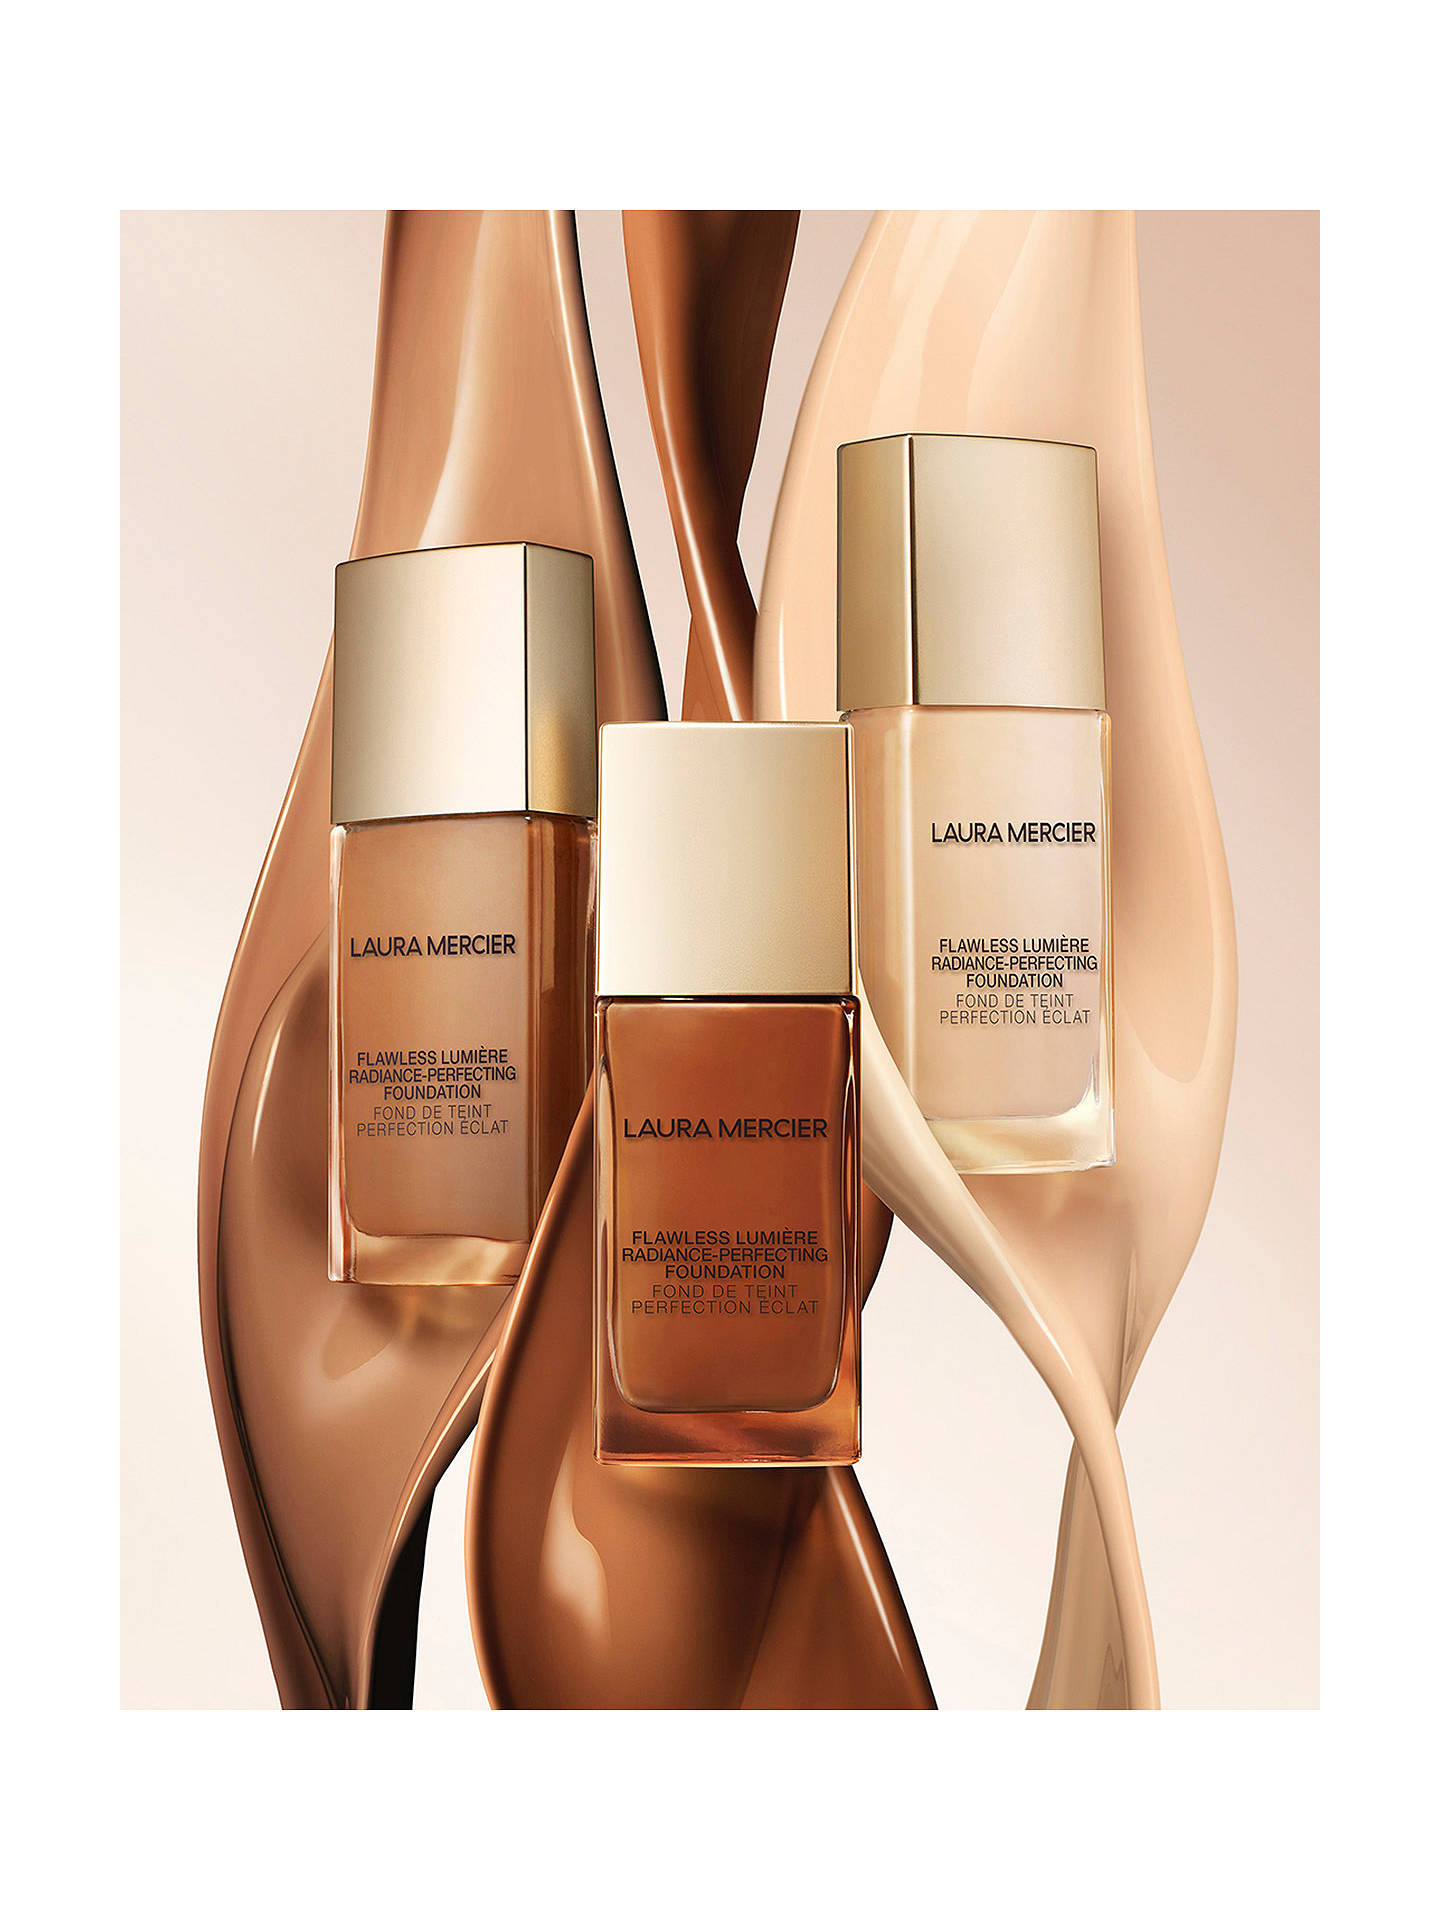 BuyLaura Mercier Flawless Lumière Radiance-Perfecting Foundation, 1C0 Cameo Online at johnlewis.com